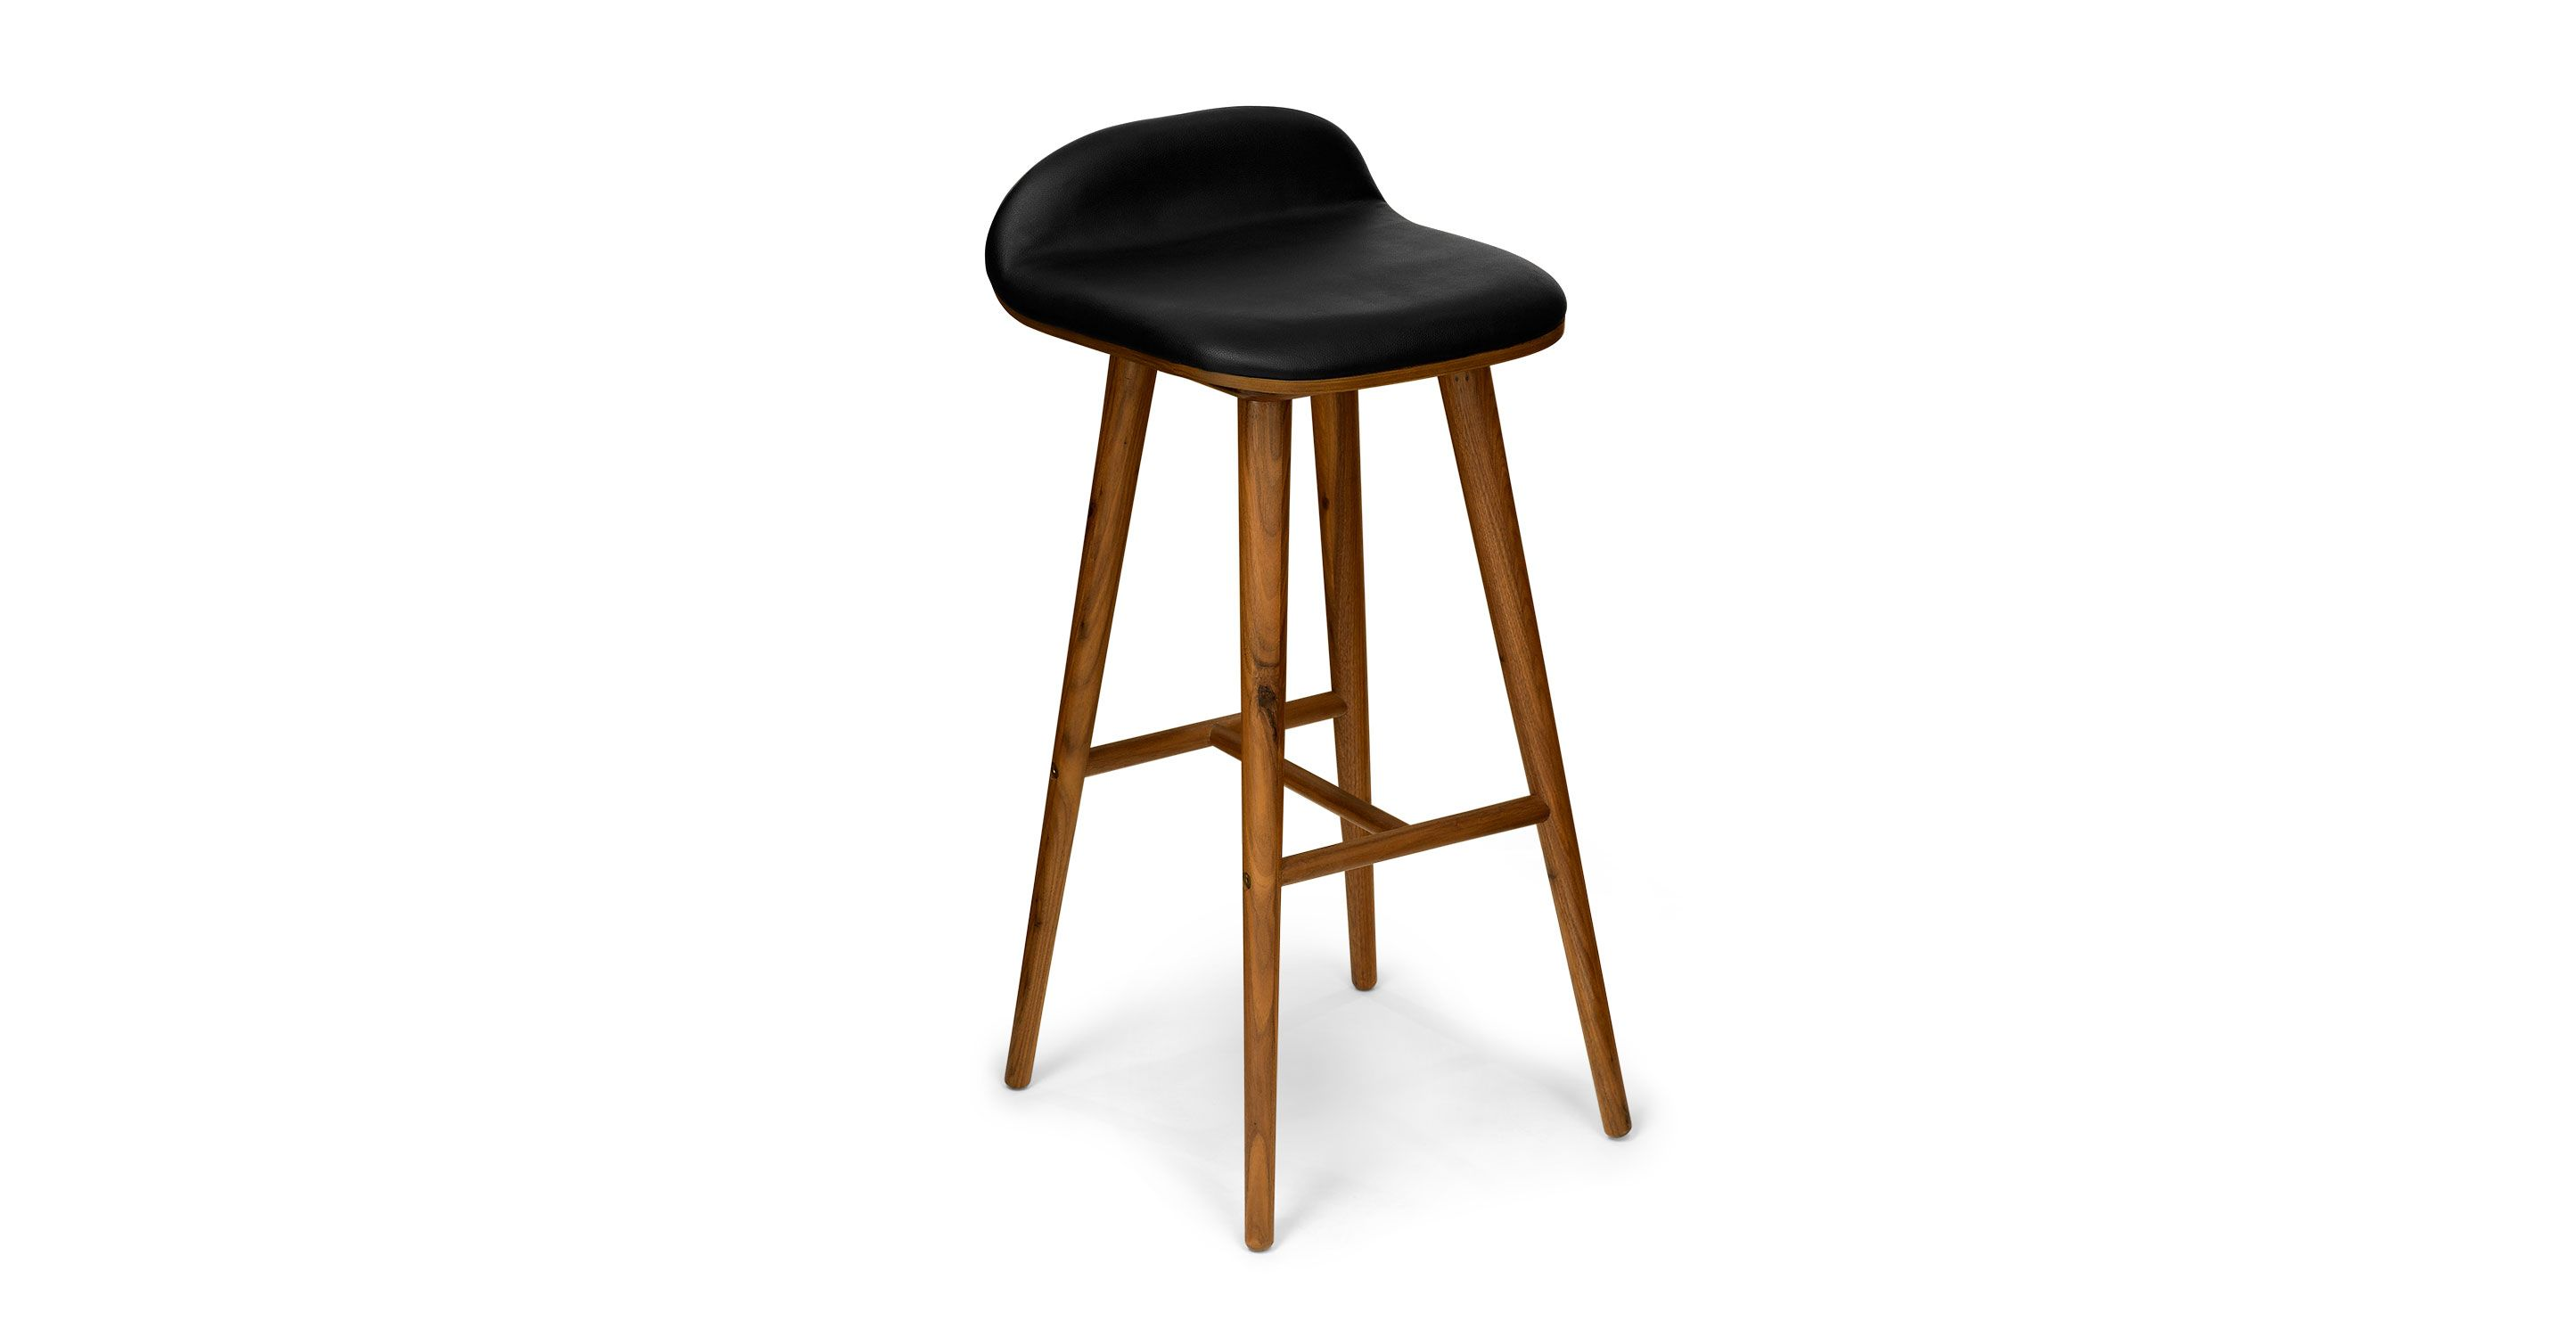 Modern Wood Bar Stool Black Leather Bar Stool With Back Walnut Wood Article